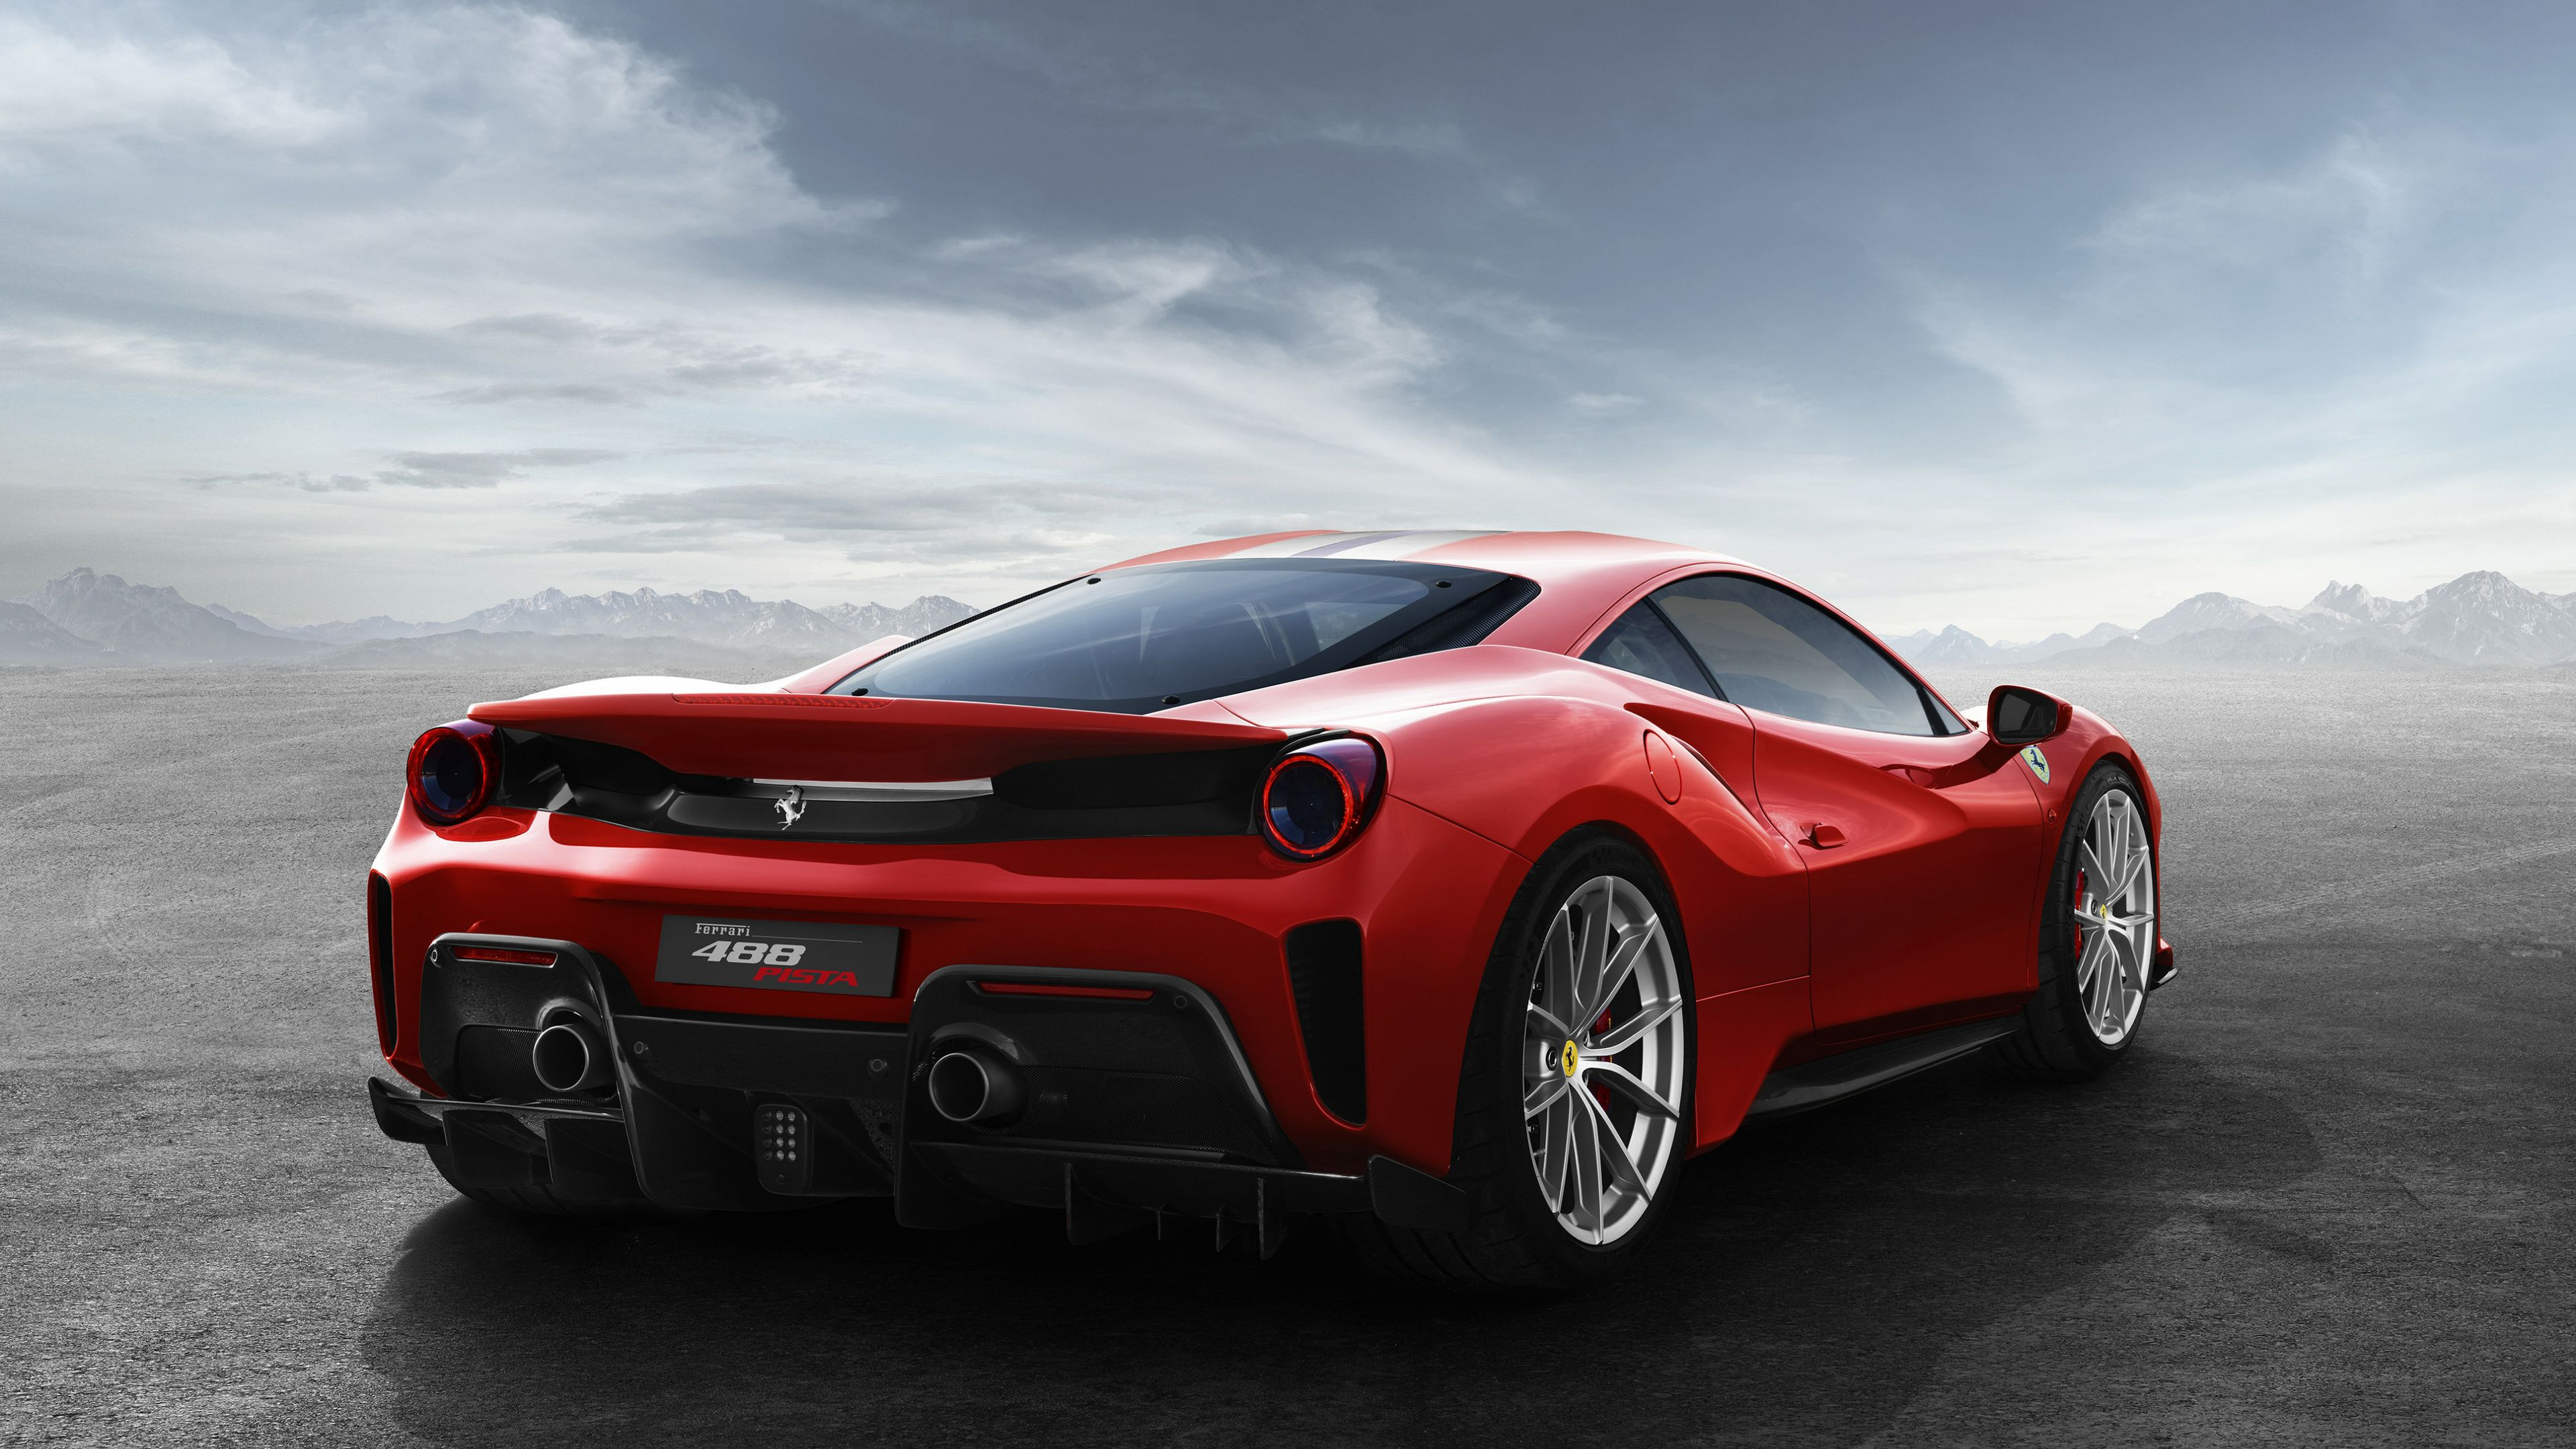 Wallpaper 4k Ferrari 488 Pista 2018rear 2017 Cars Wallpapers 4k